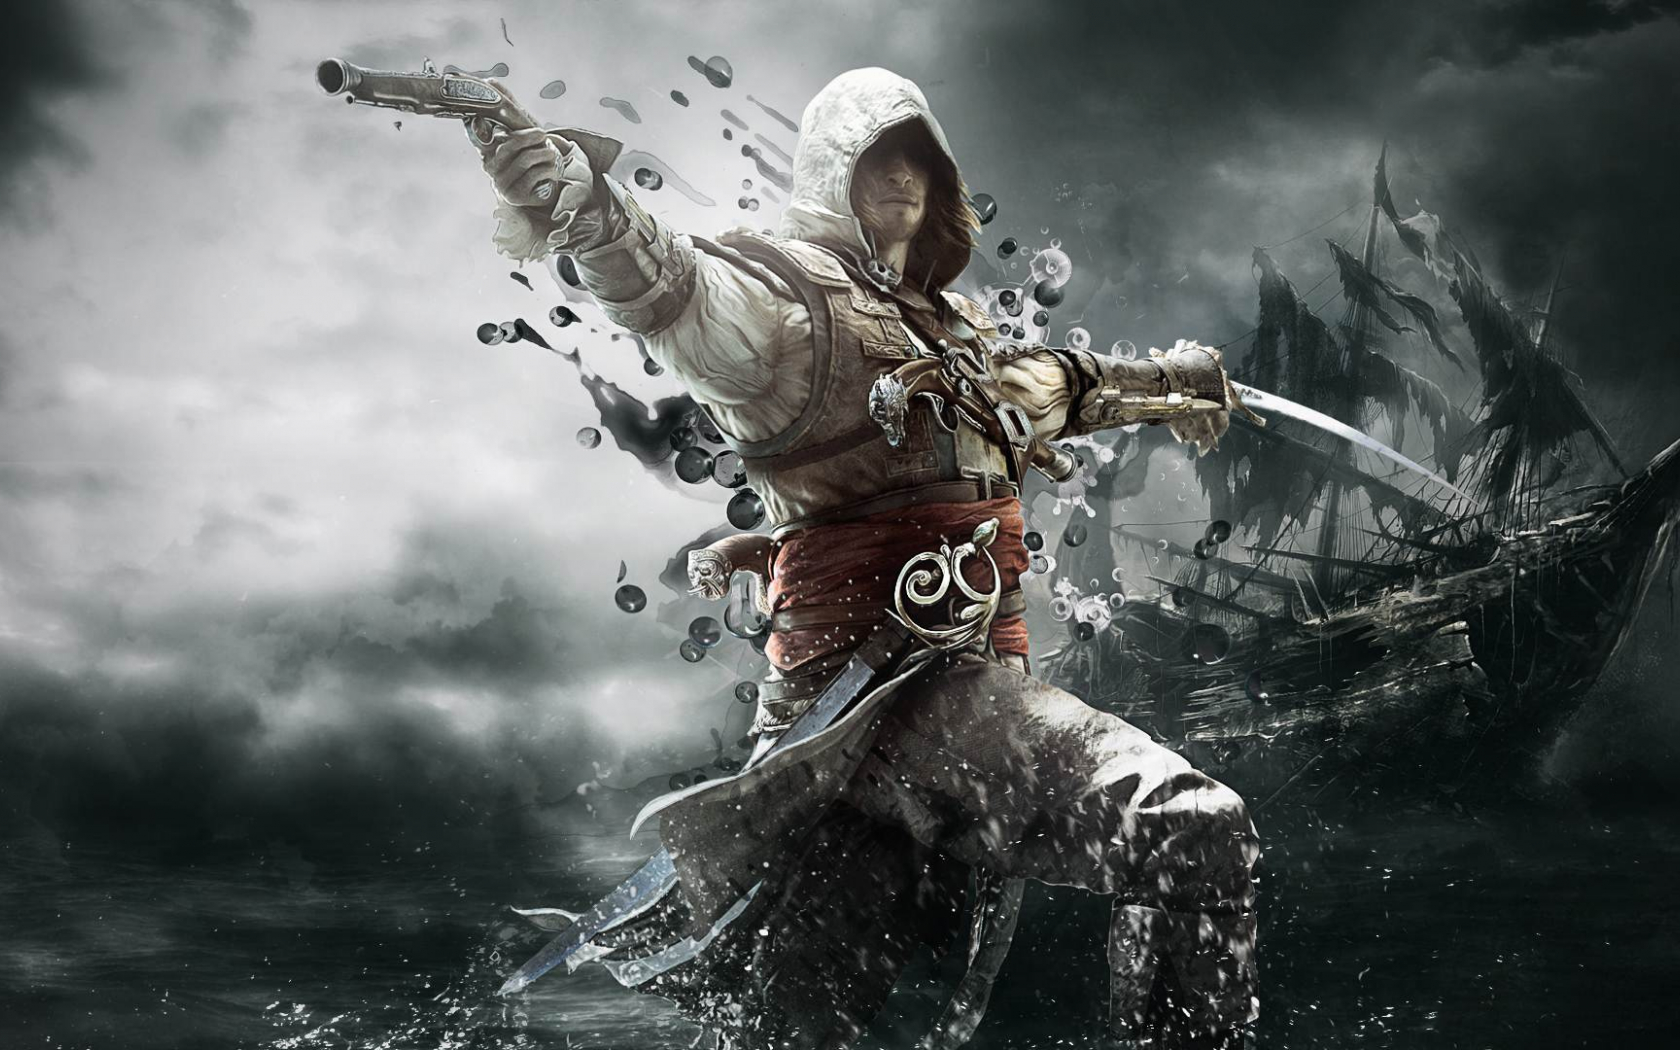 Free Download Assassins Creed 4 Black Flag Wallpapers En 1080p Hd